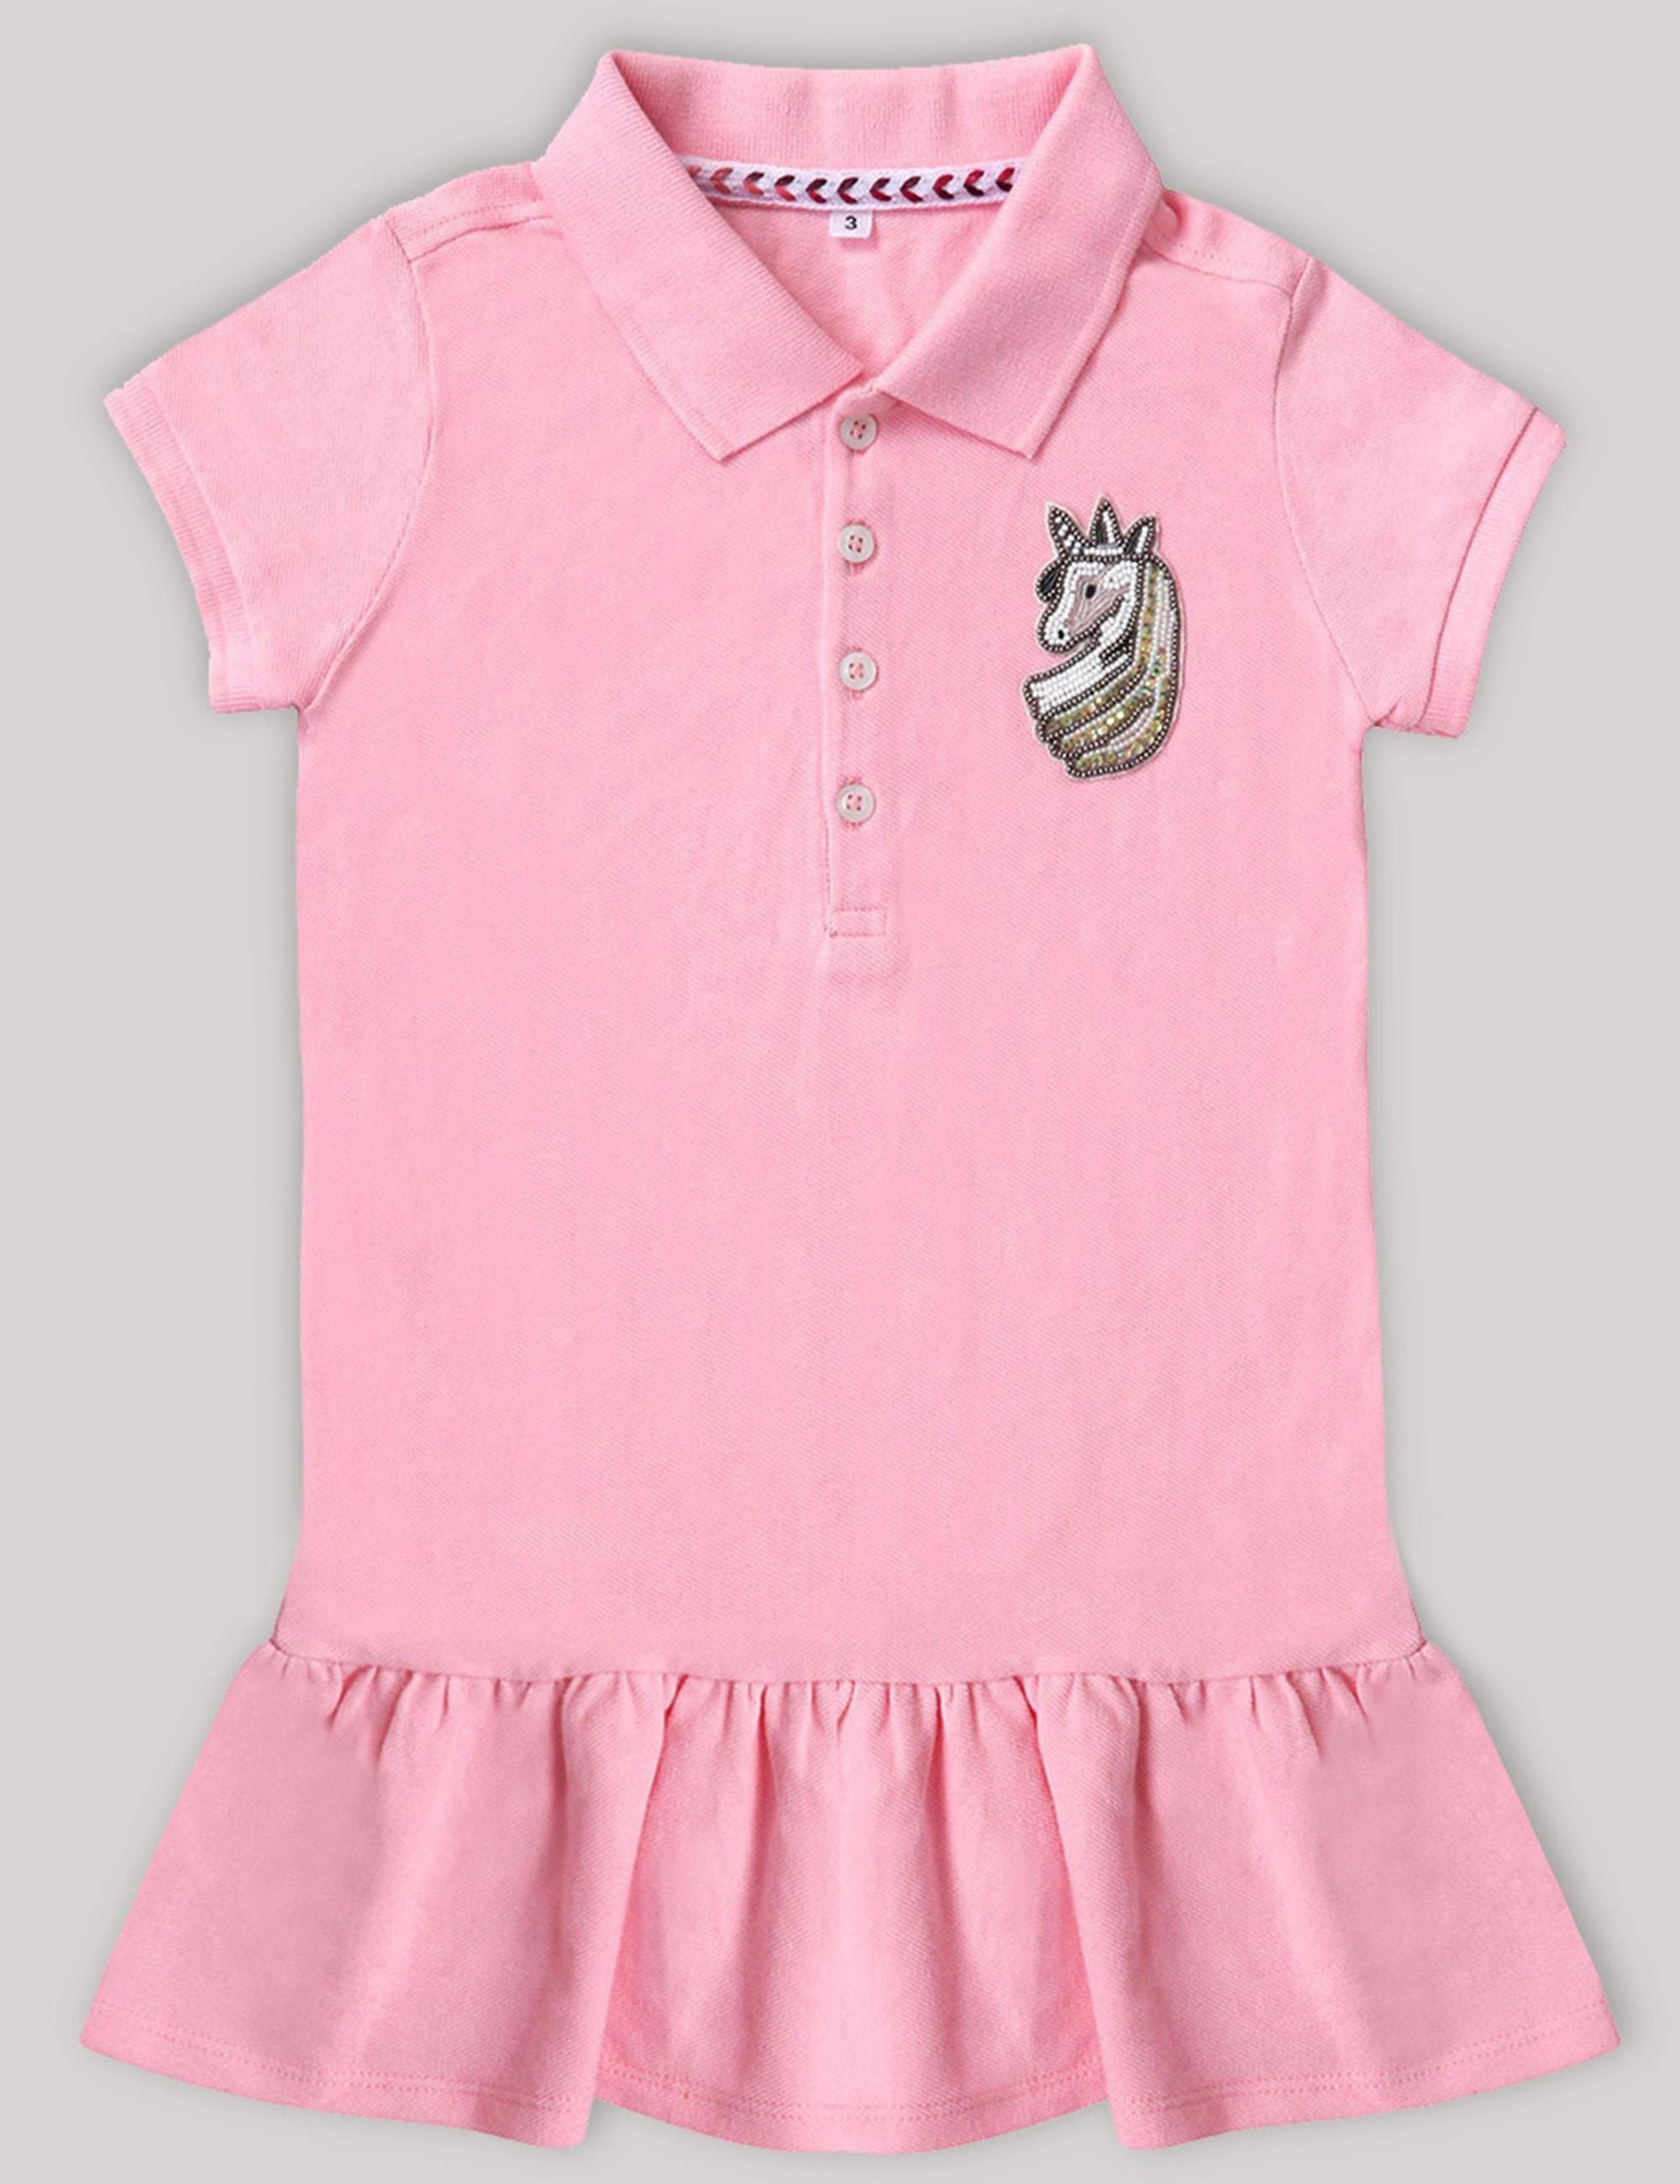 f98082d7e9 Girls Polo T-Shirt Dress with very Quirky Unicorn Patch On a Corner .